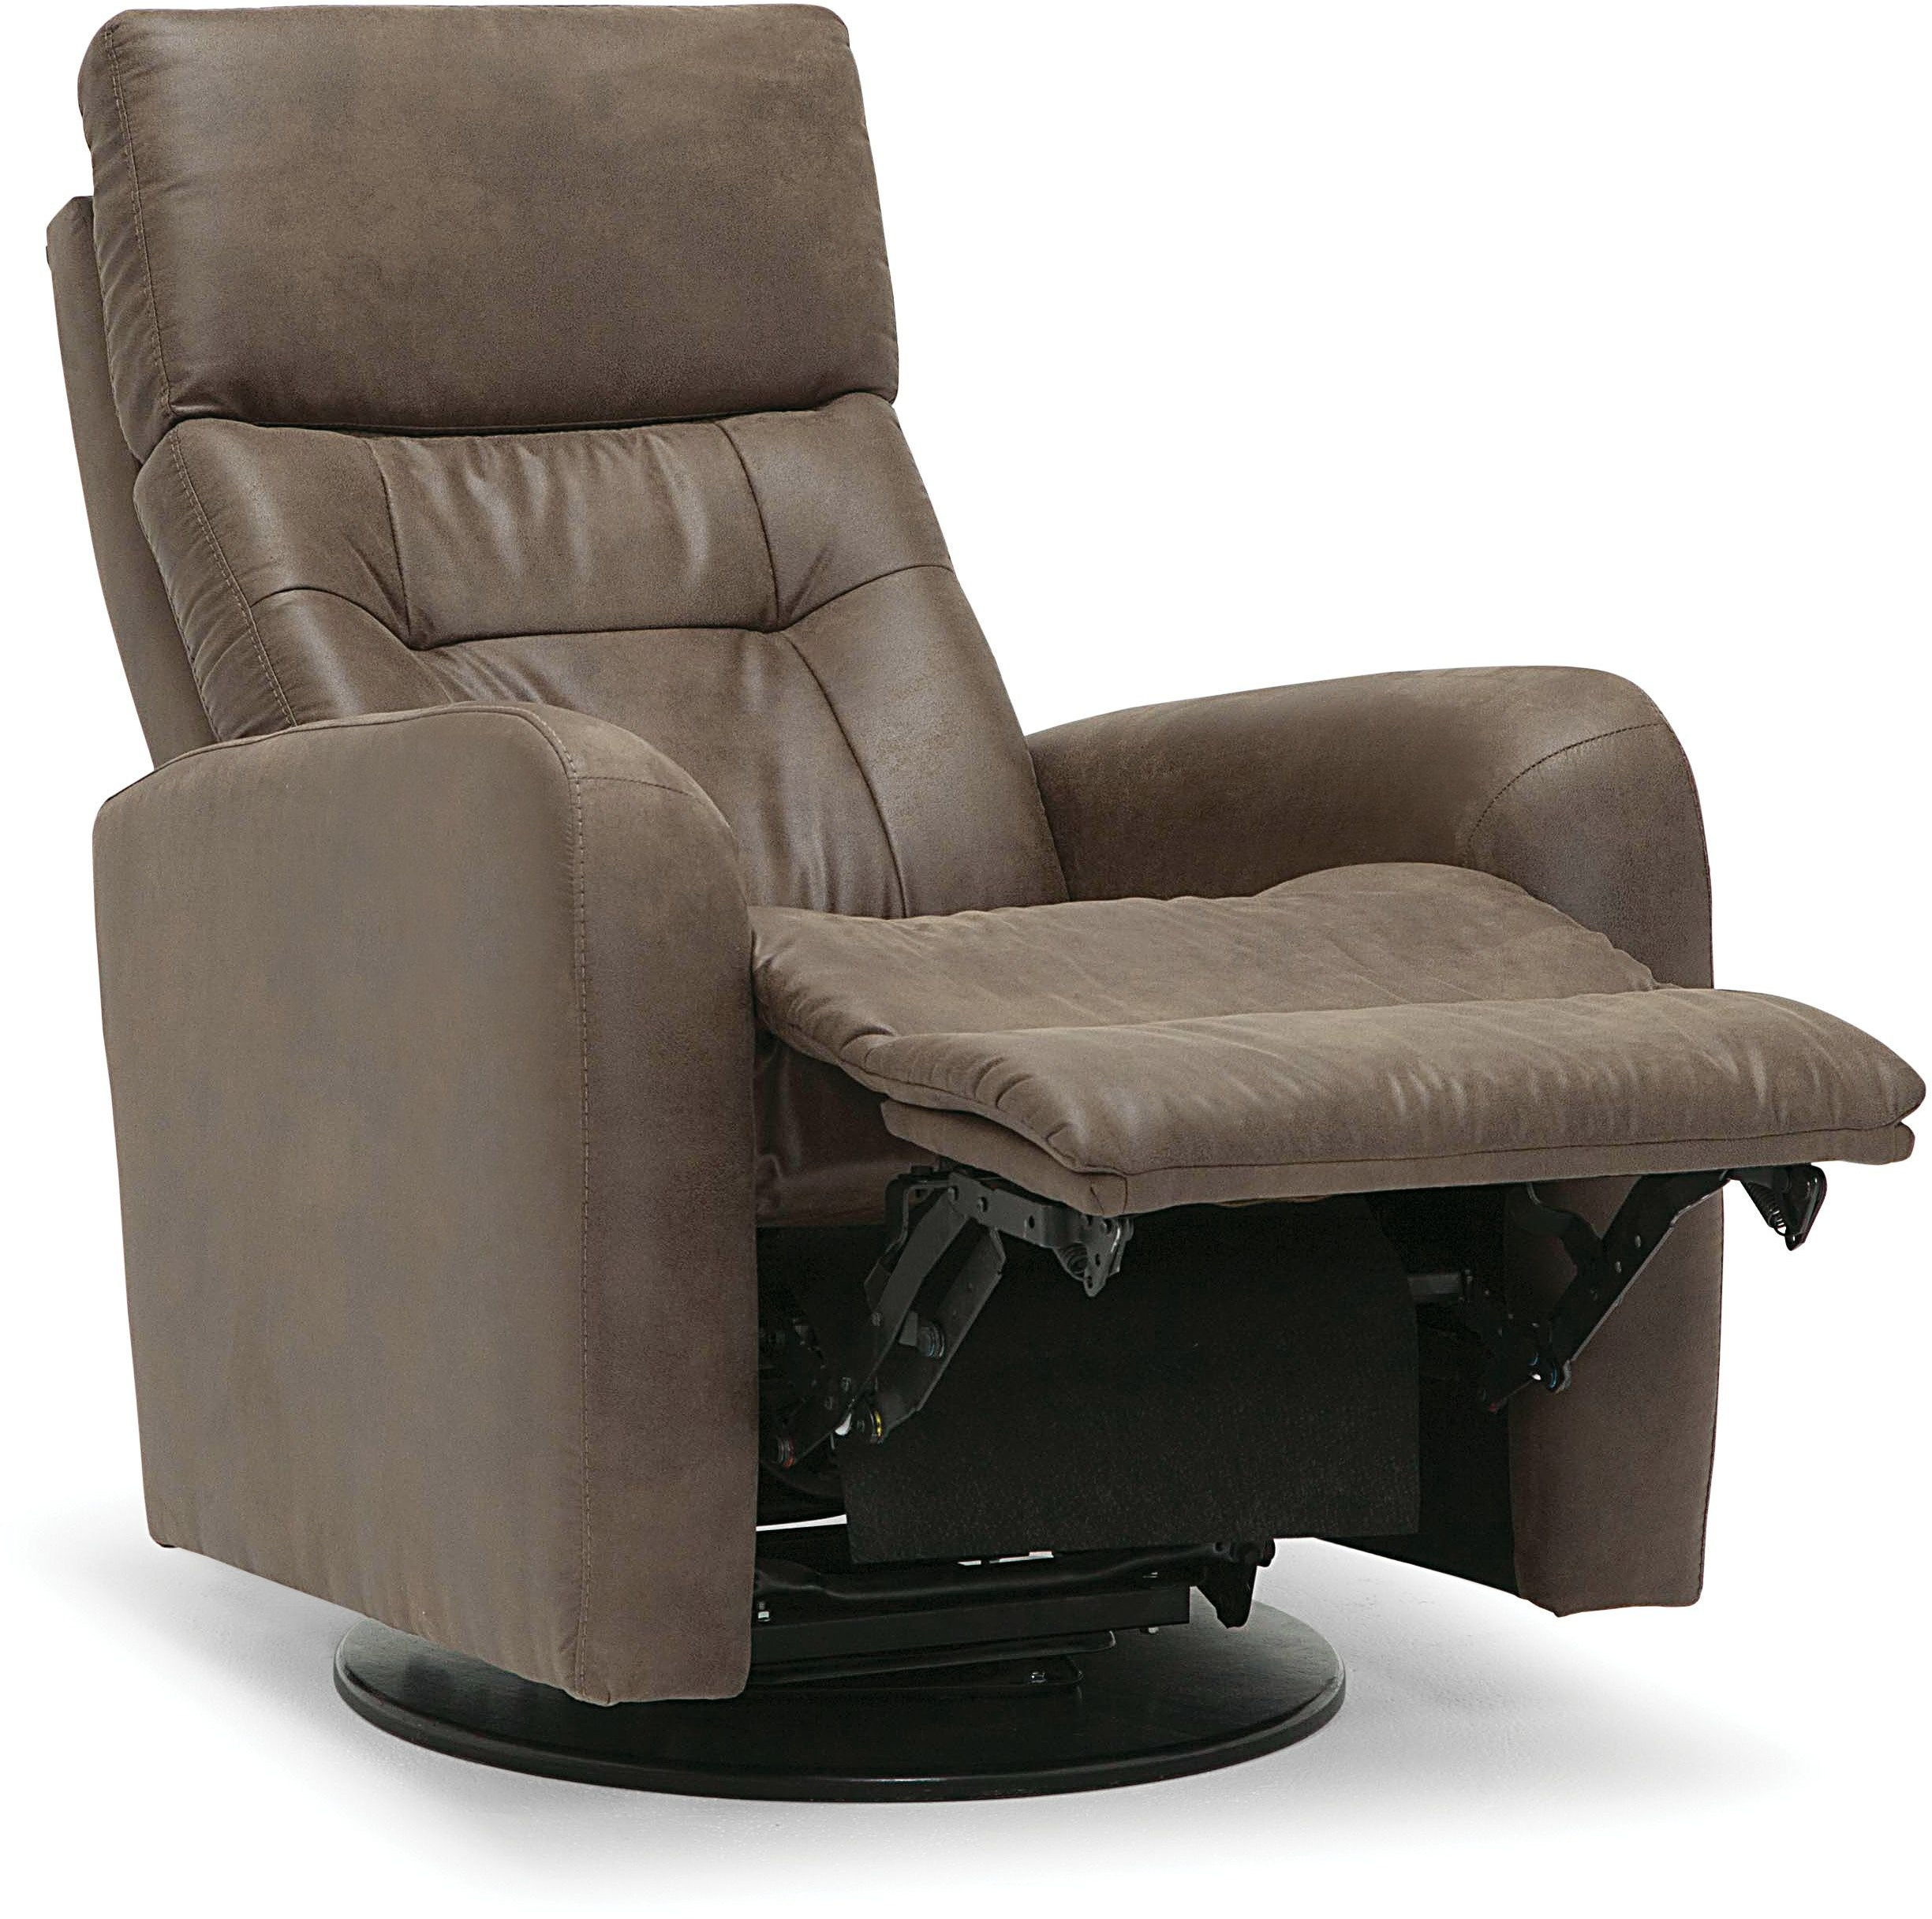 Palliser Furniture Living Room Swivel Glider Recliner Power